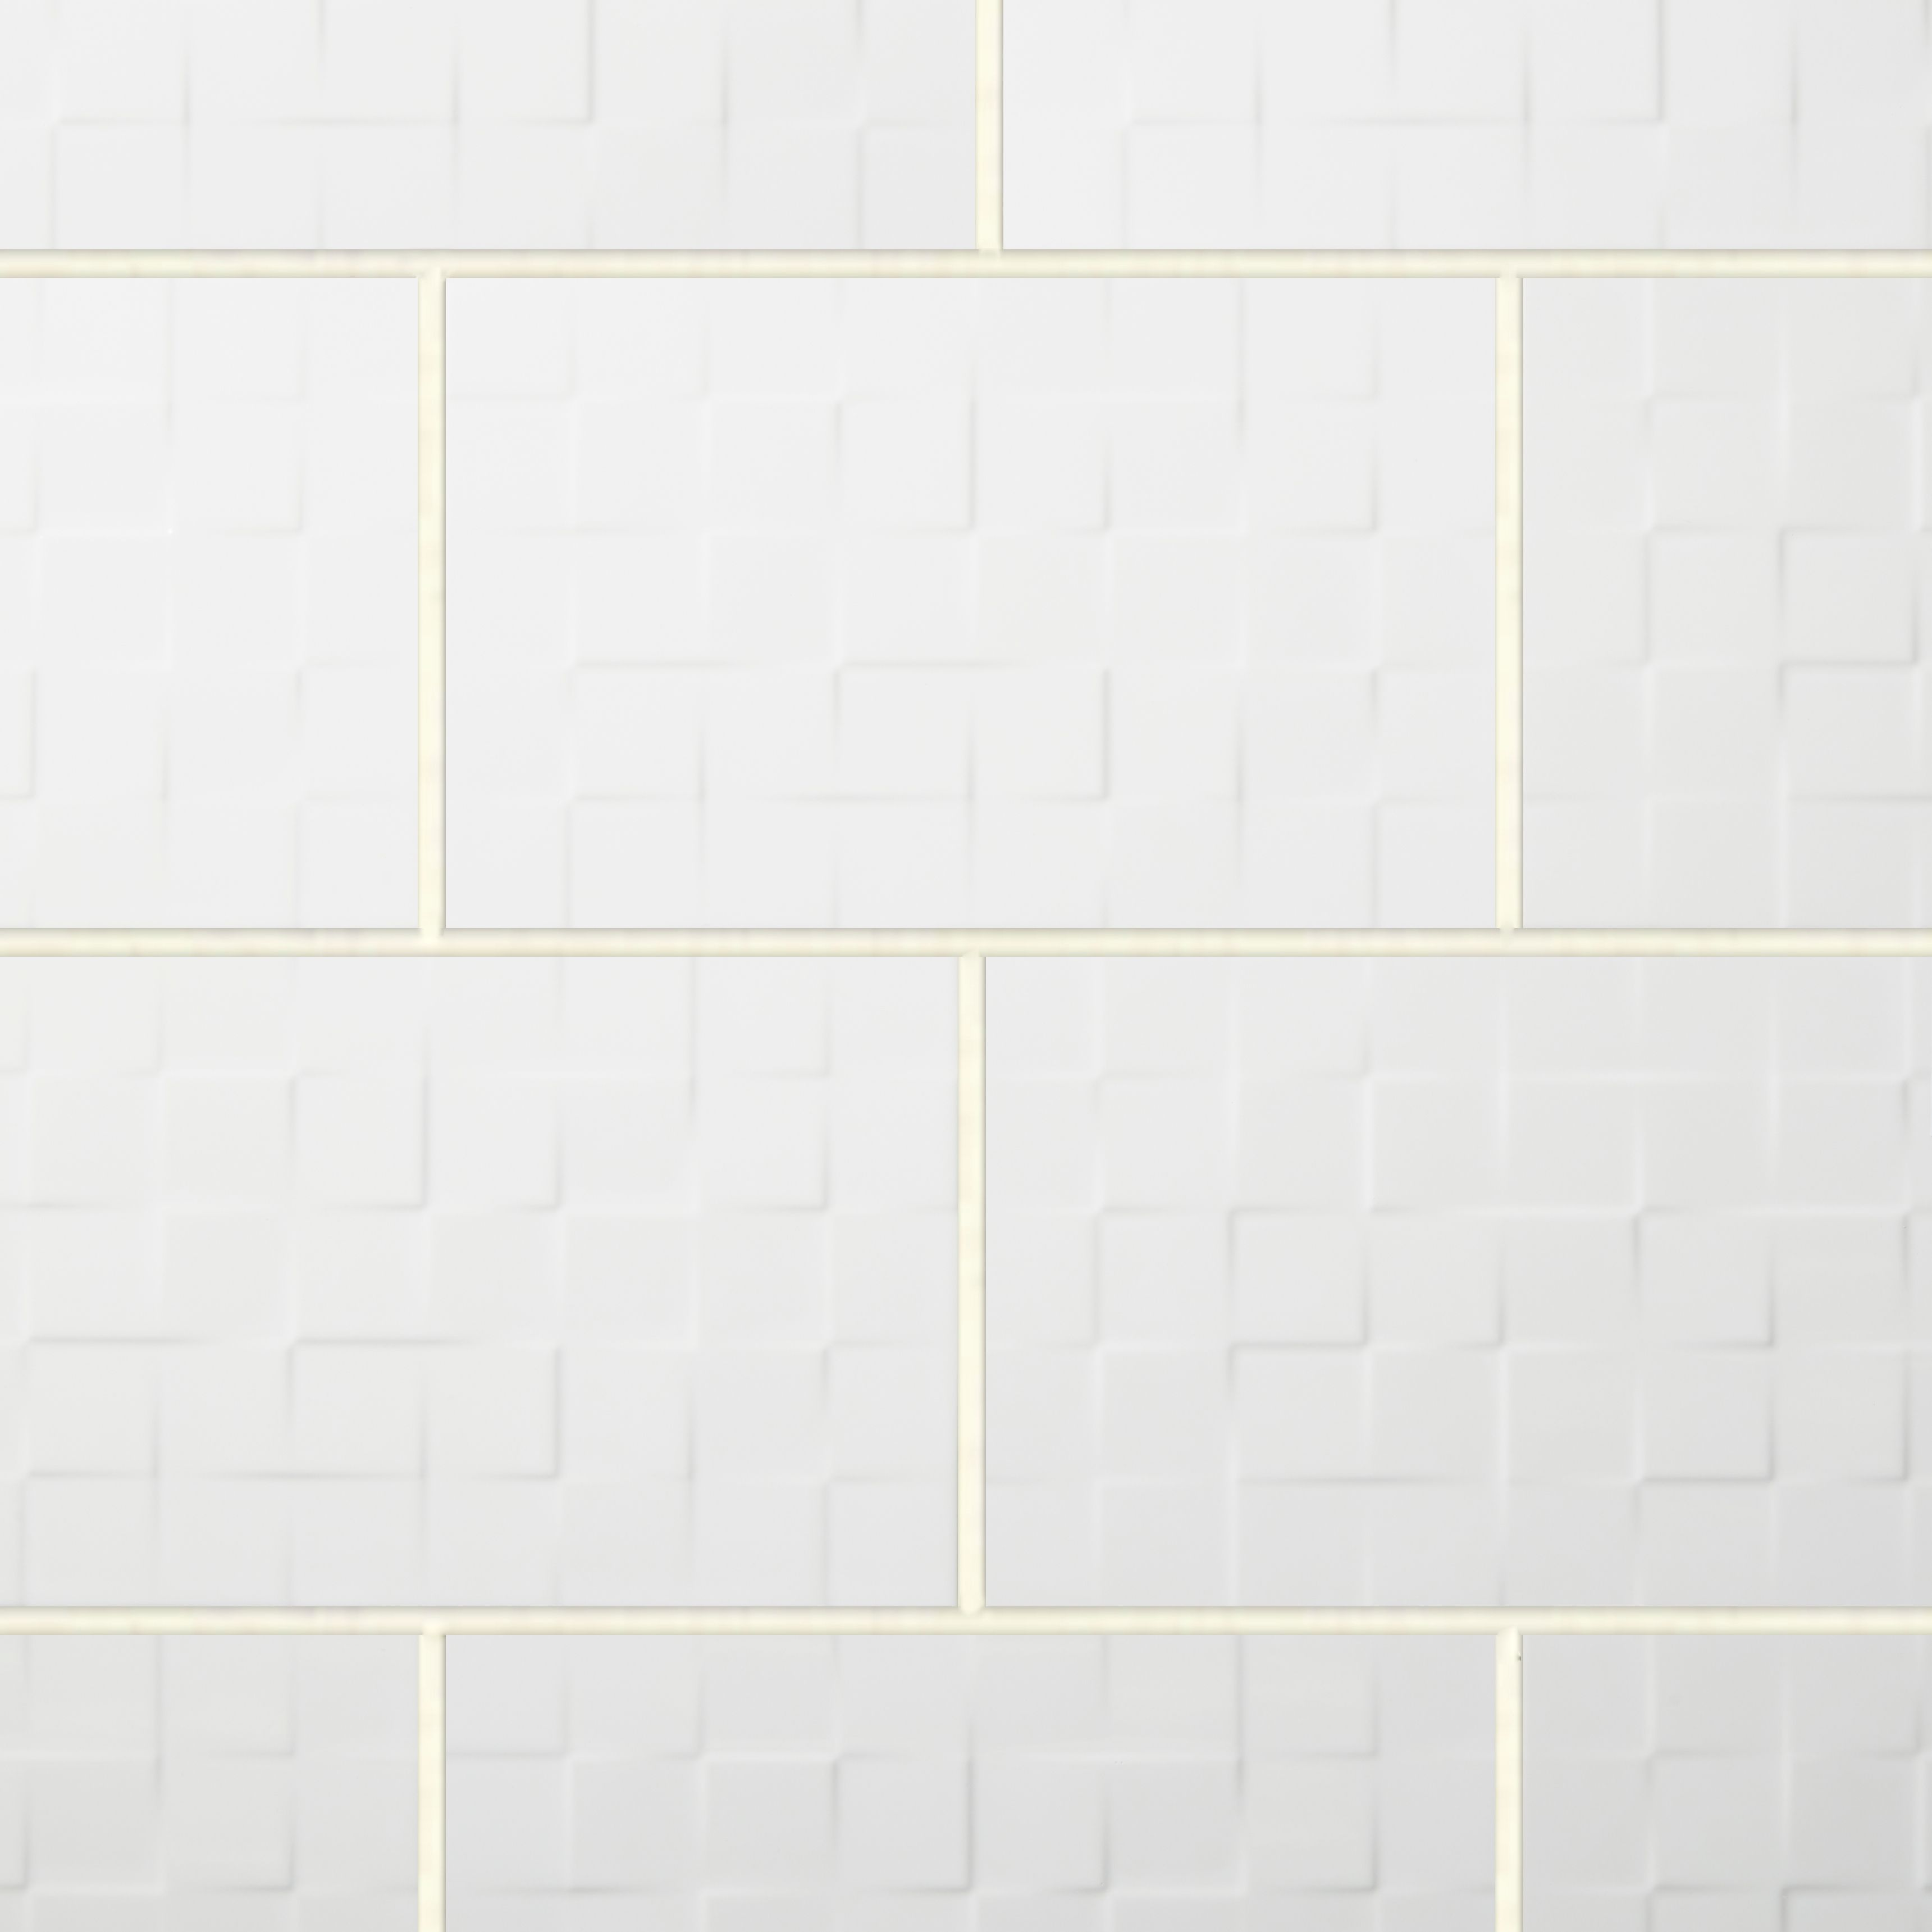 Alexandrina White Gloss Ceramic Wall Tile Pack Of 15 L 400mm W 250mm Departments Diy At B Q